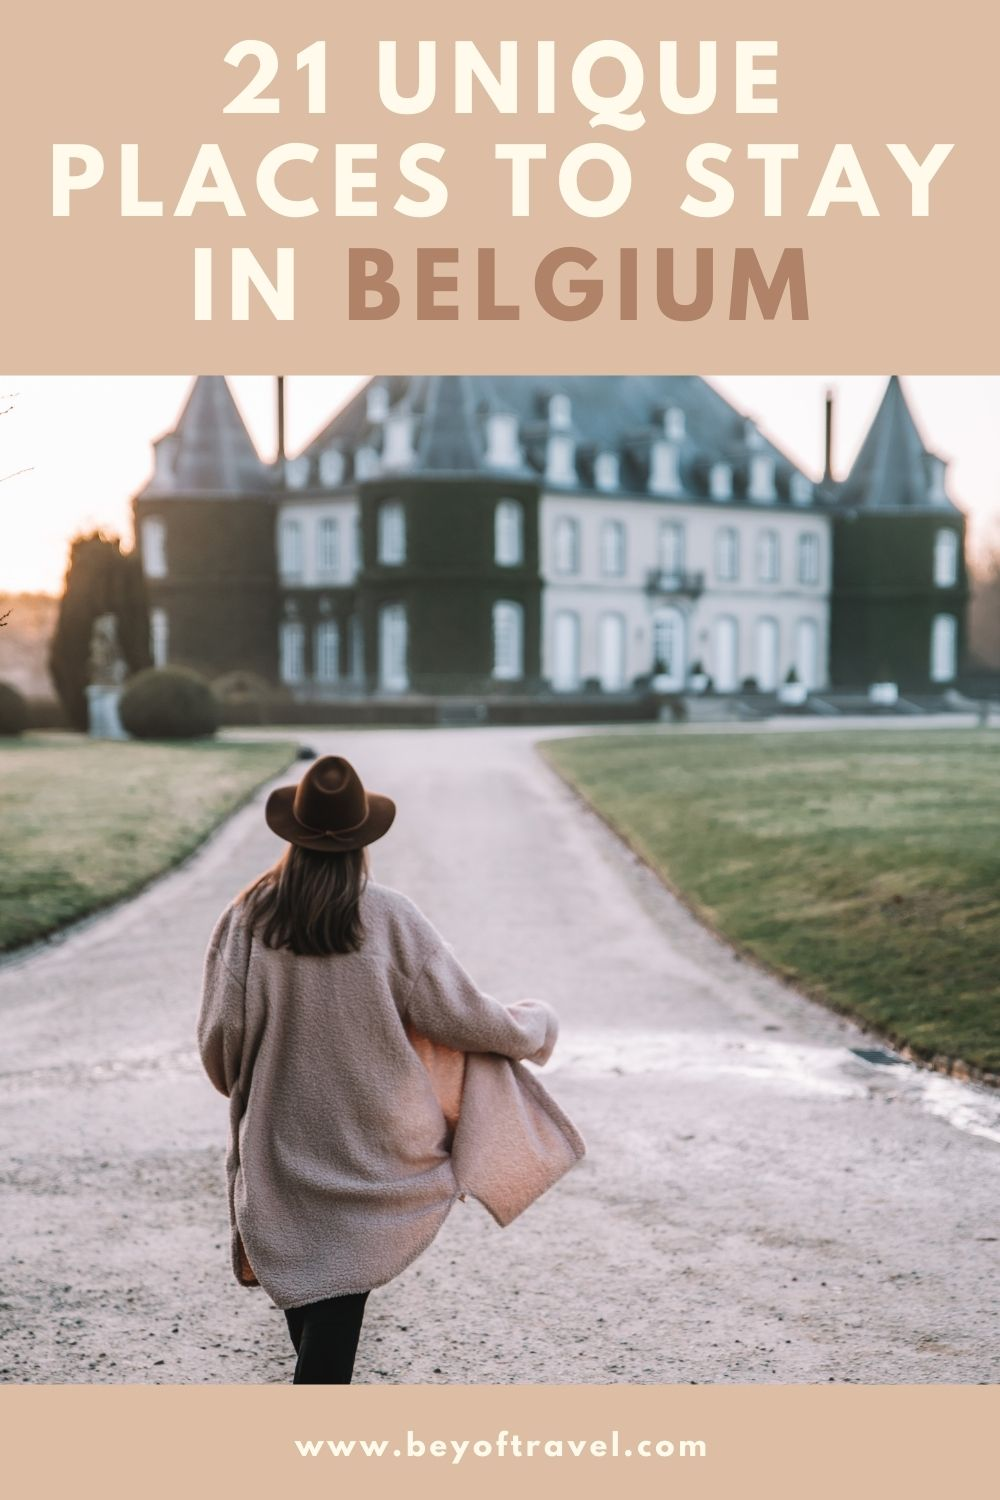 21 unique places to stay in Belgium